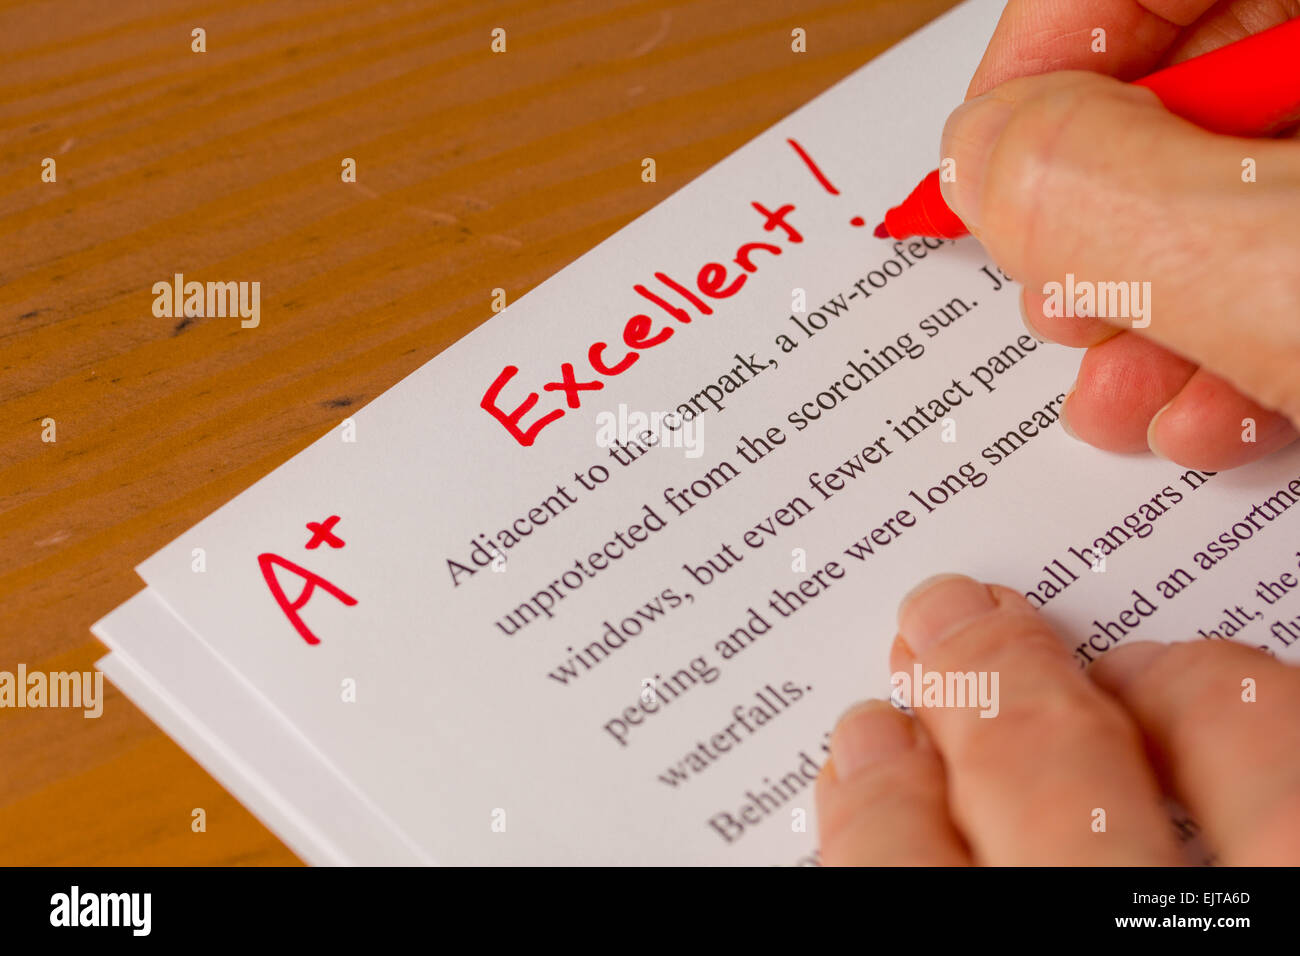 Hand with Red Pen Grading Papers with Excellent - Success concept in education industry - Stock Image